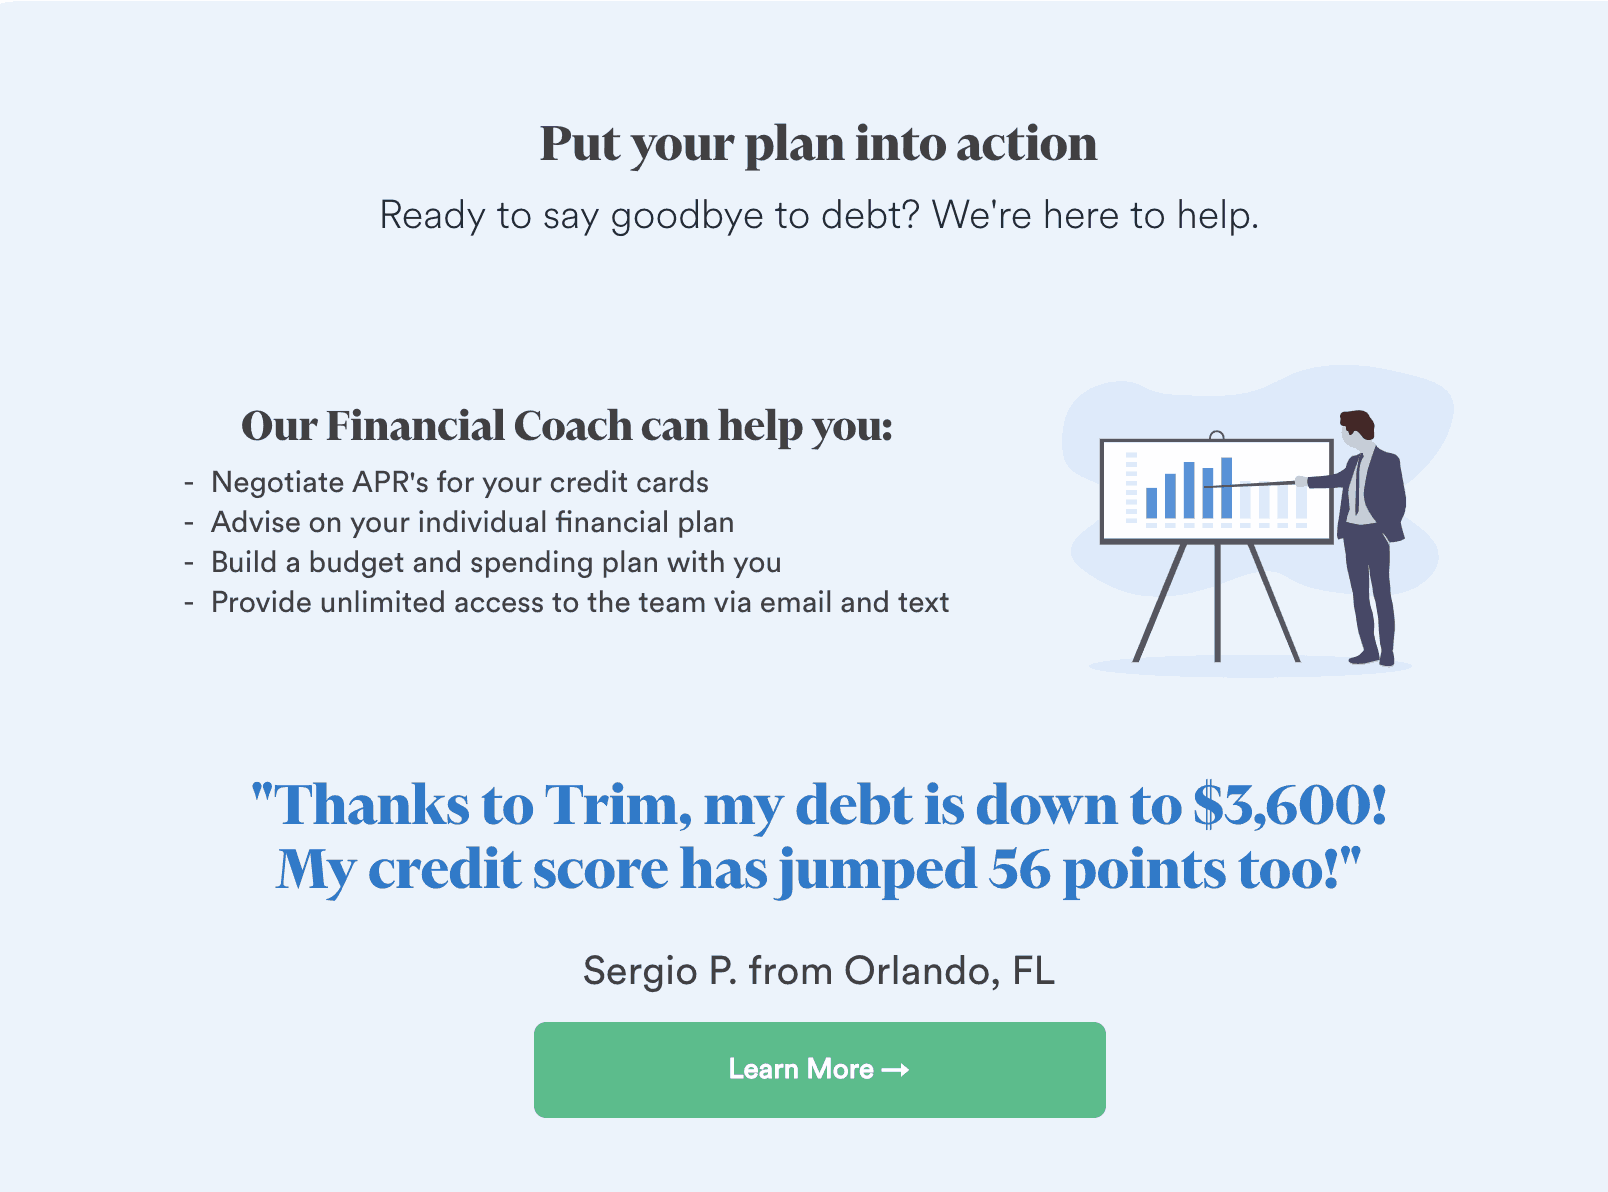 Trim Review - Put Your Plan Into Action